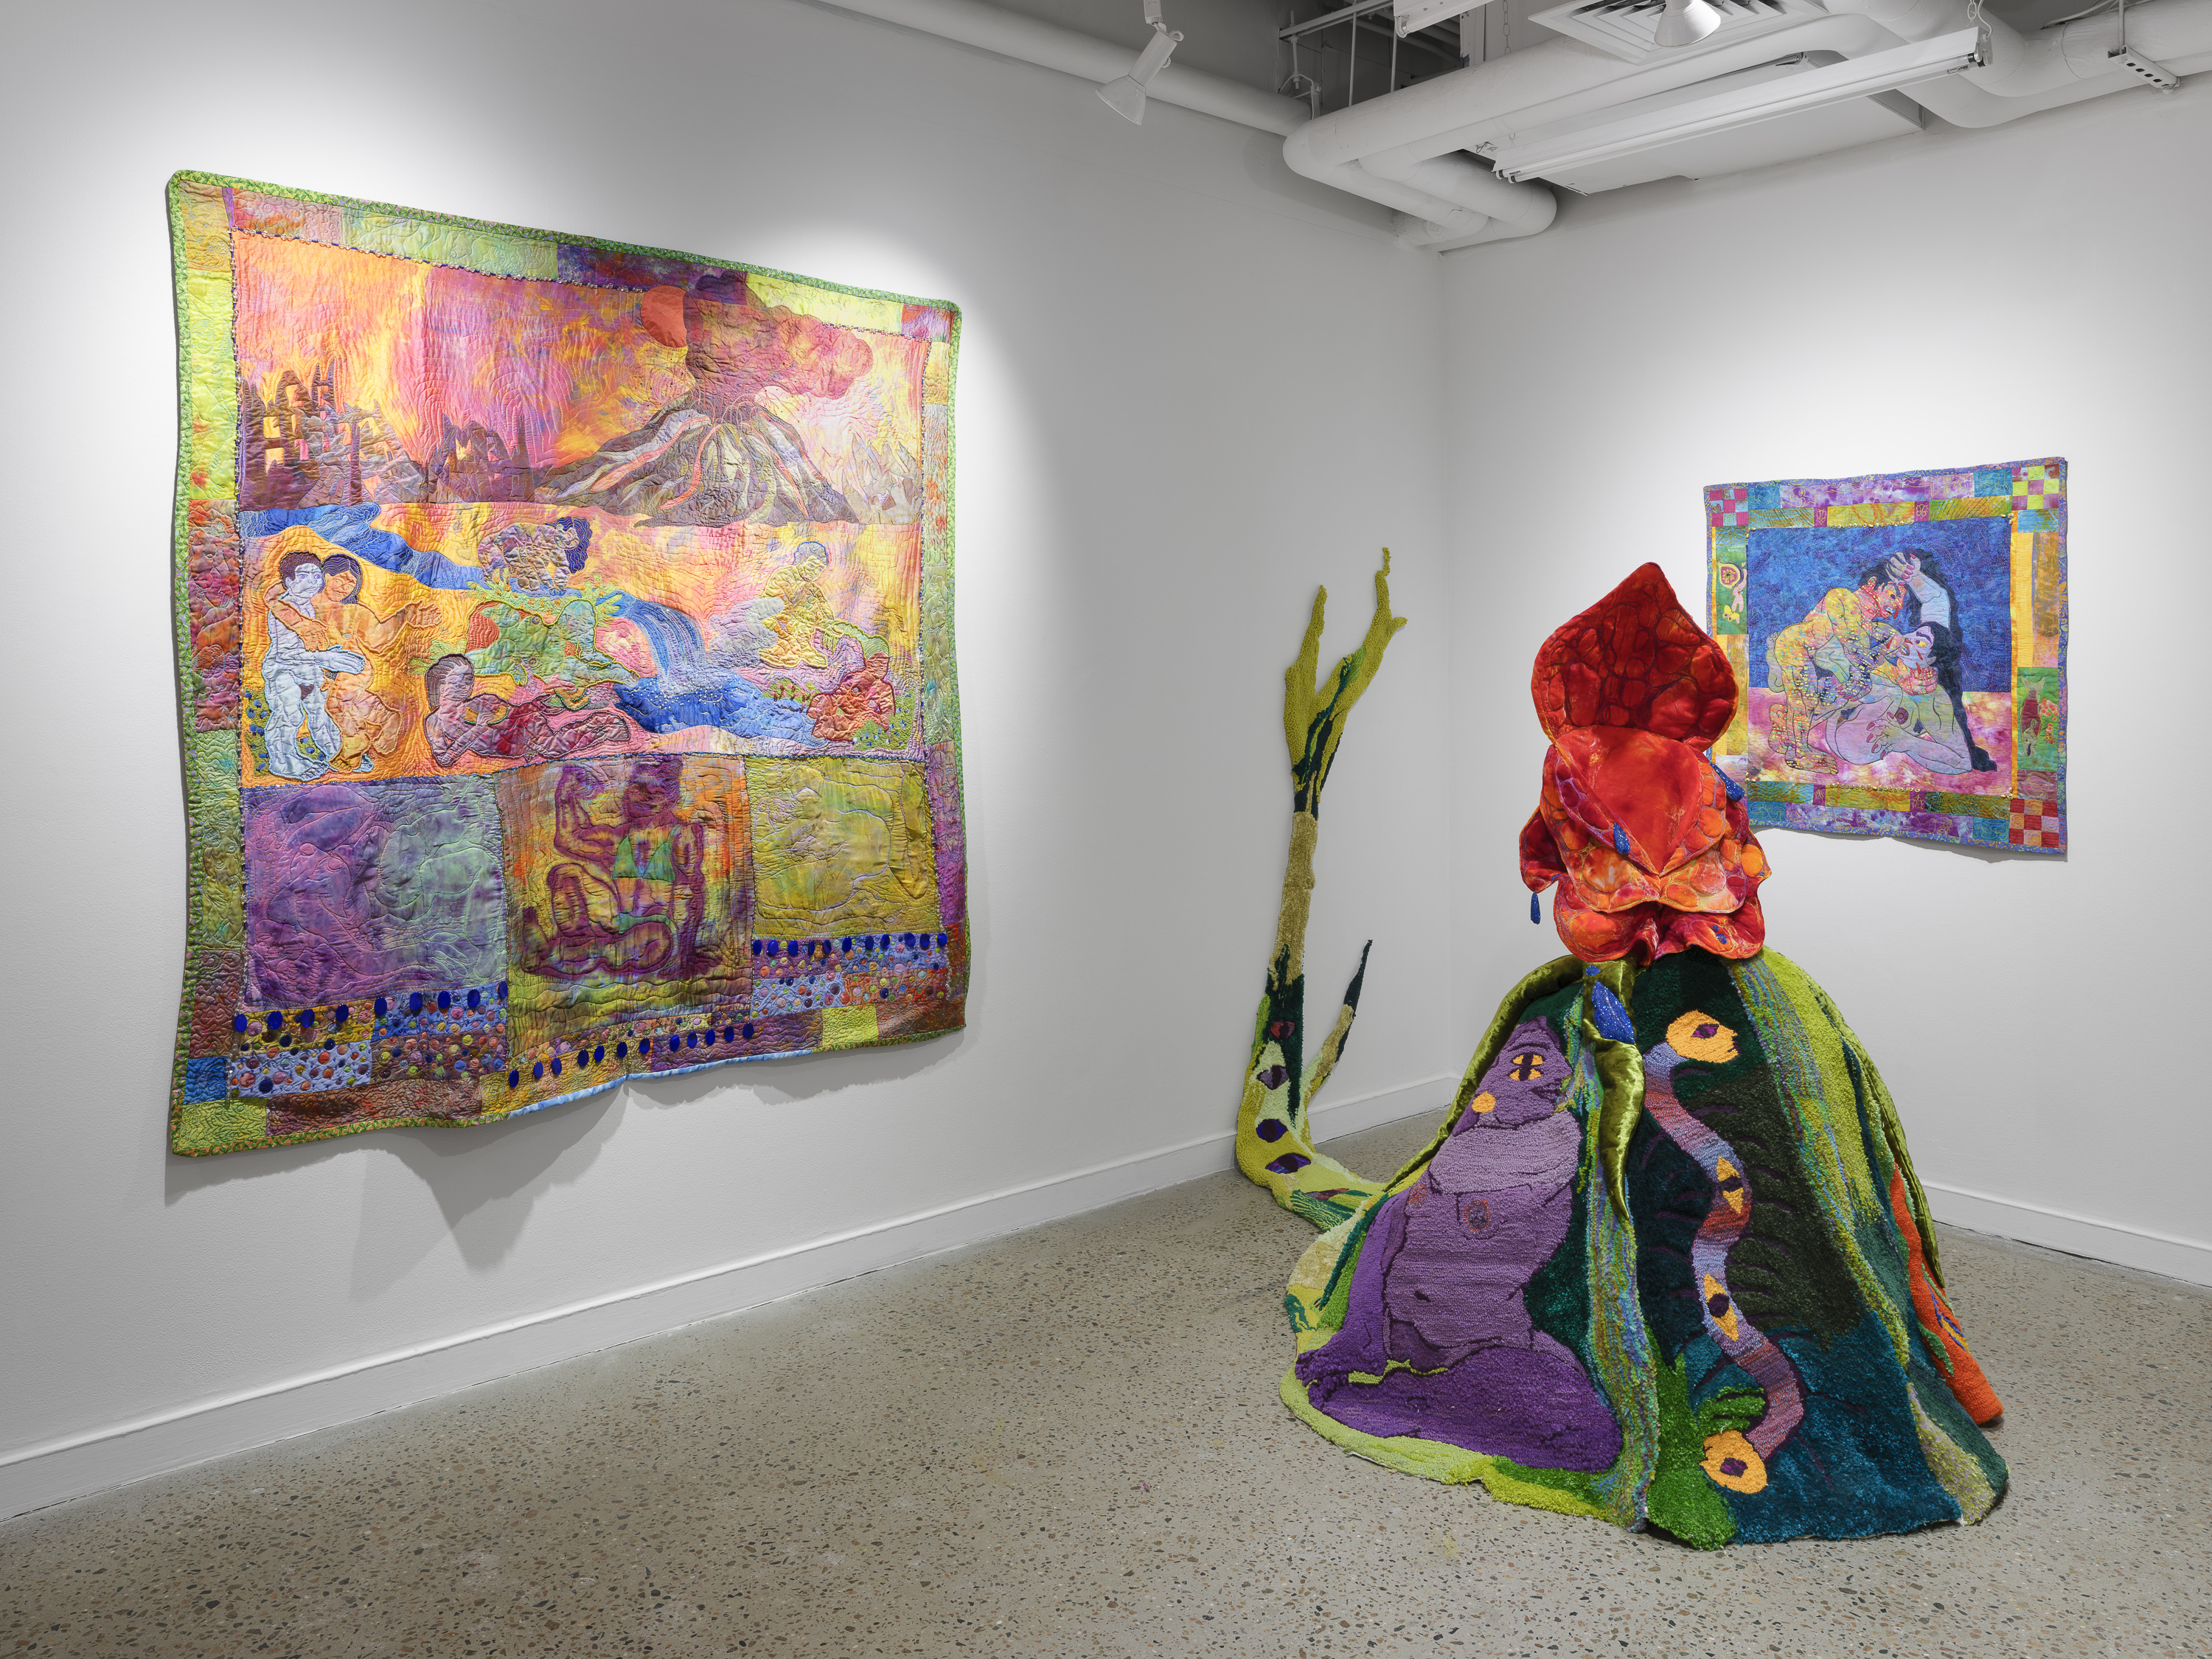 Large scale artwork on wall of gallery and on floor, depicting bright colors of abstract people, a volcano and snake..